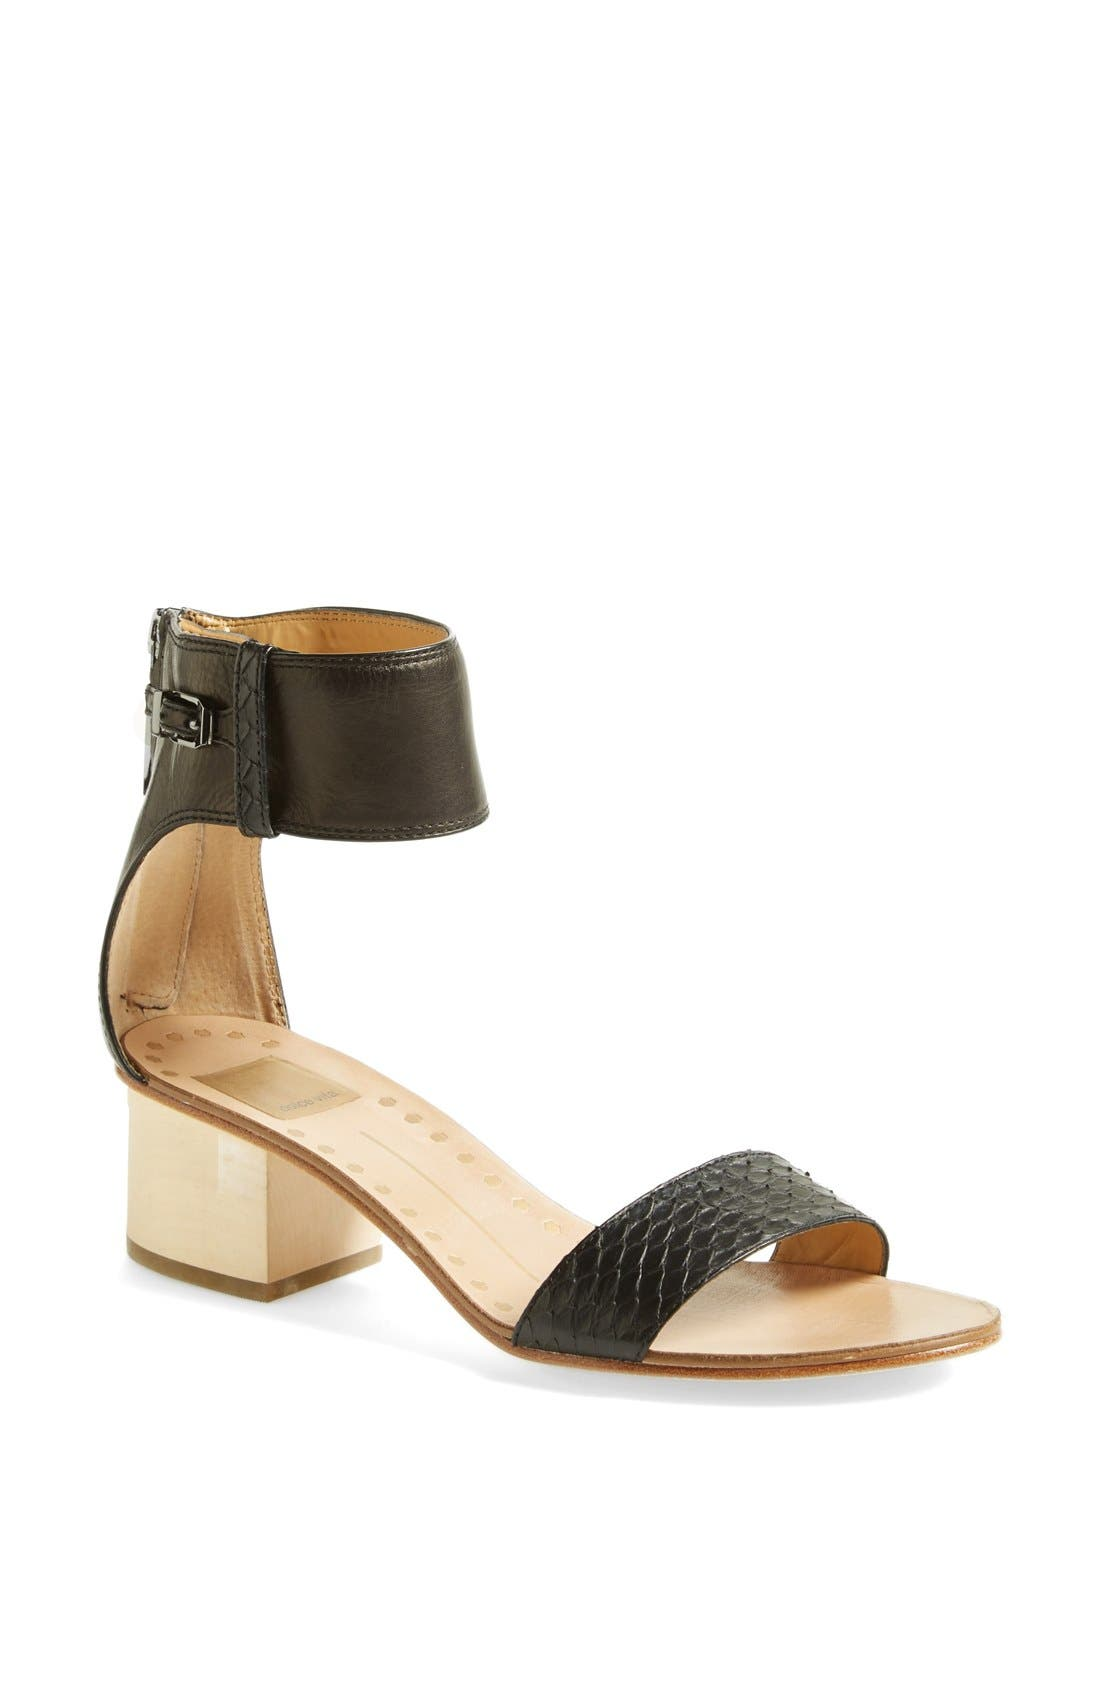 Alternate Image 1 Selected - Dolce Vita 'Foxie' Snakeskin & Leather Sandal